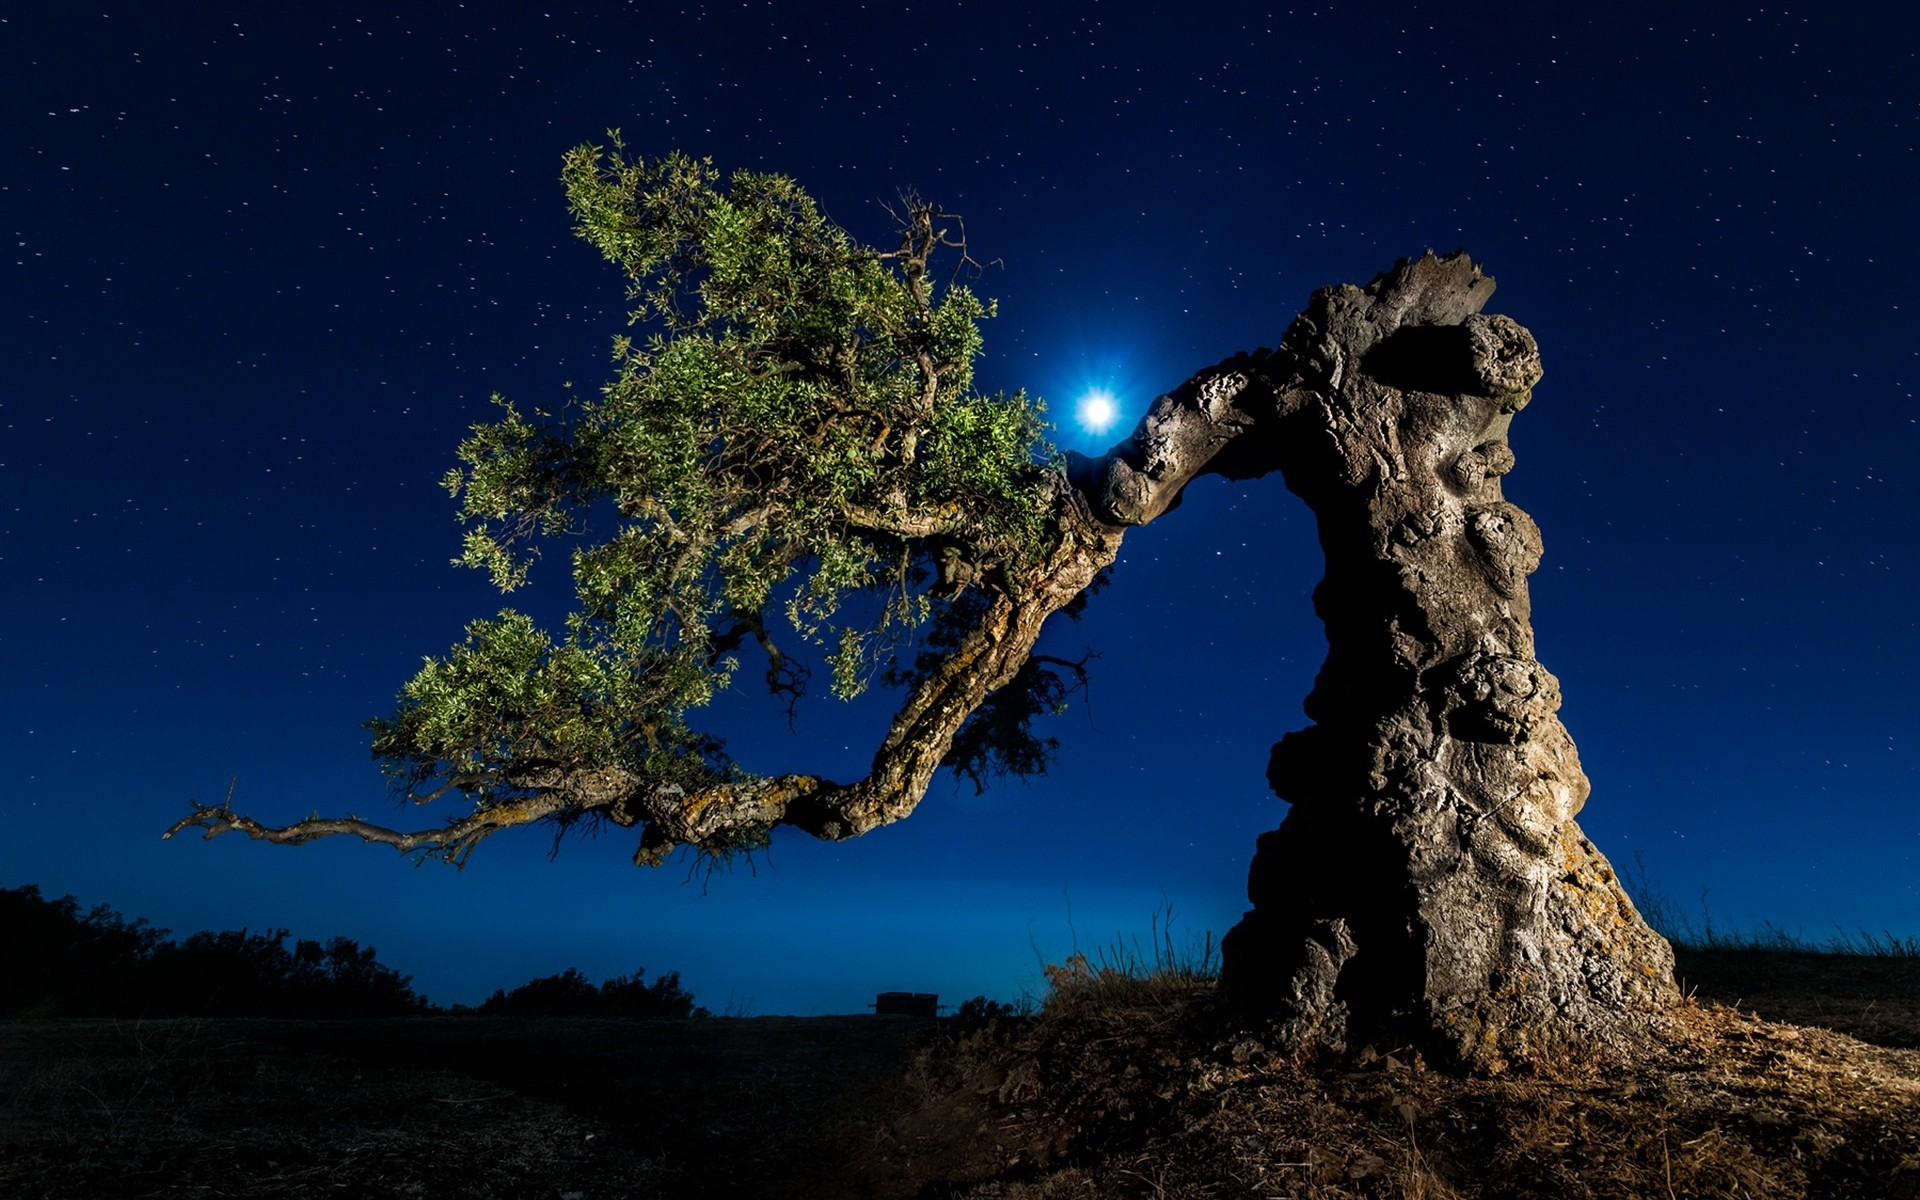 1920x1200 Twisted Tree Starry Night wallpapers and stock photos